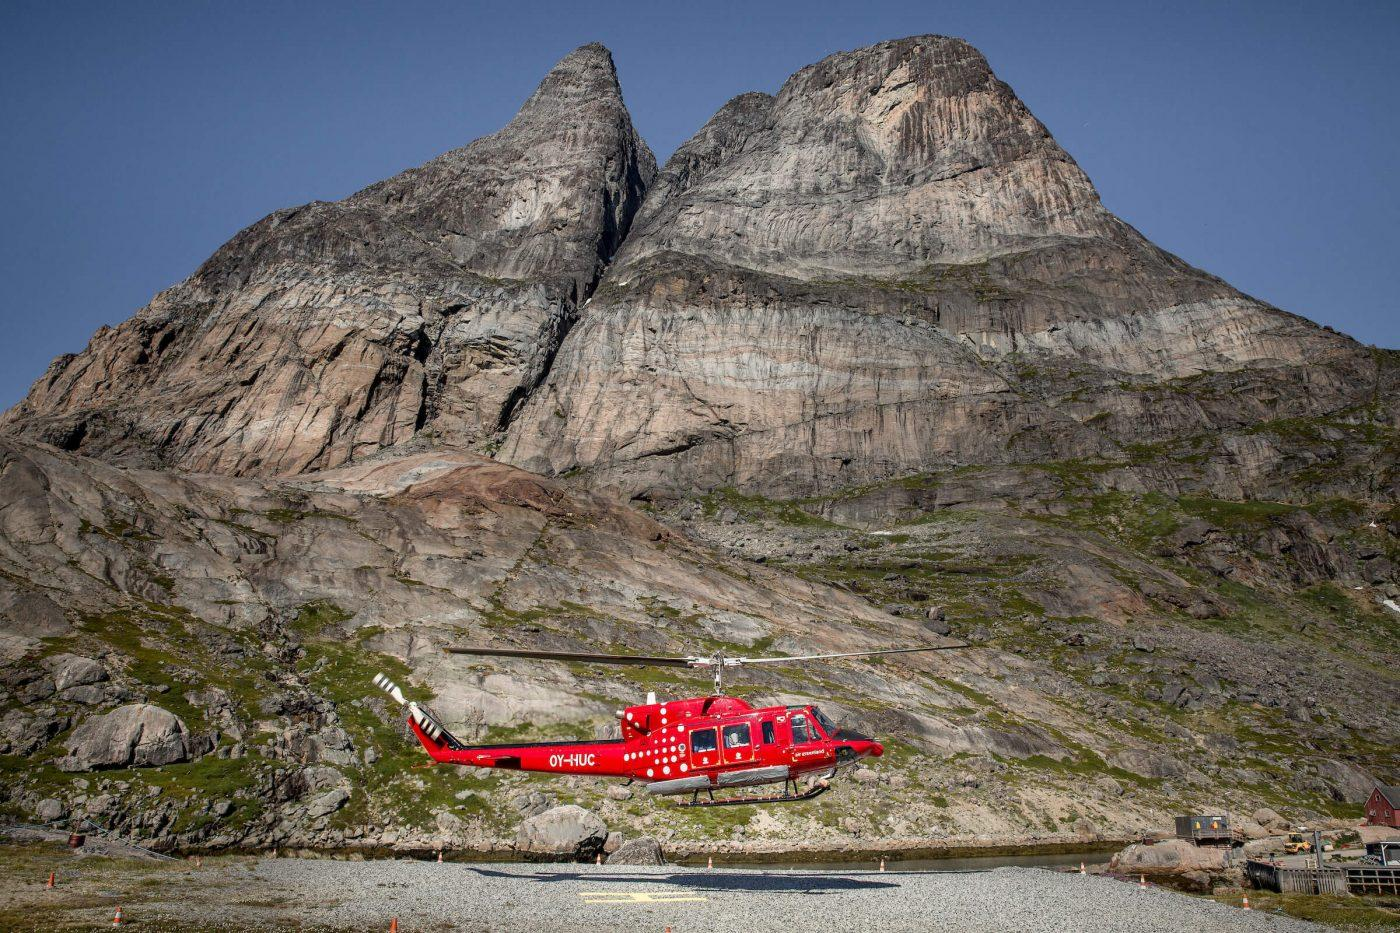 An Air Greenland Bell 212 passenger helicopter taking off from Aappilattoq in South Greenland. Photo by Mads Pihl, Visit Greenland